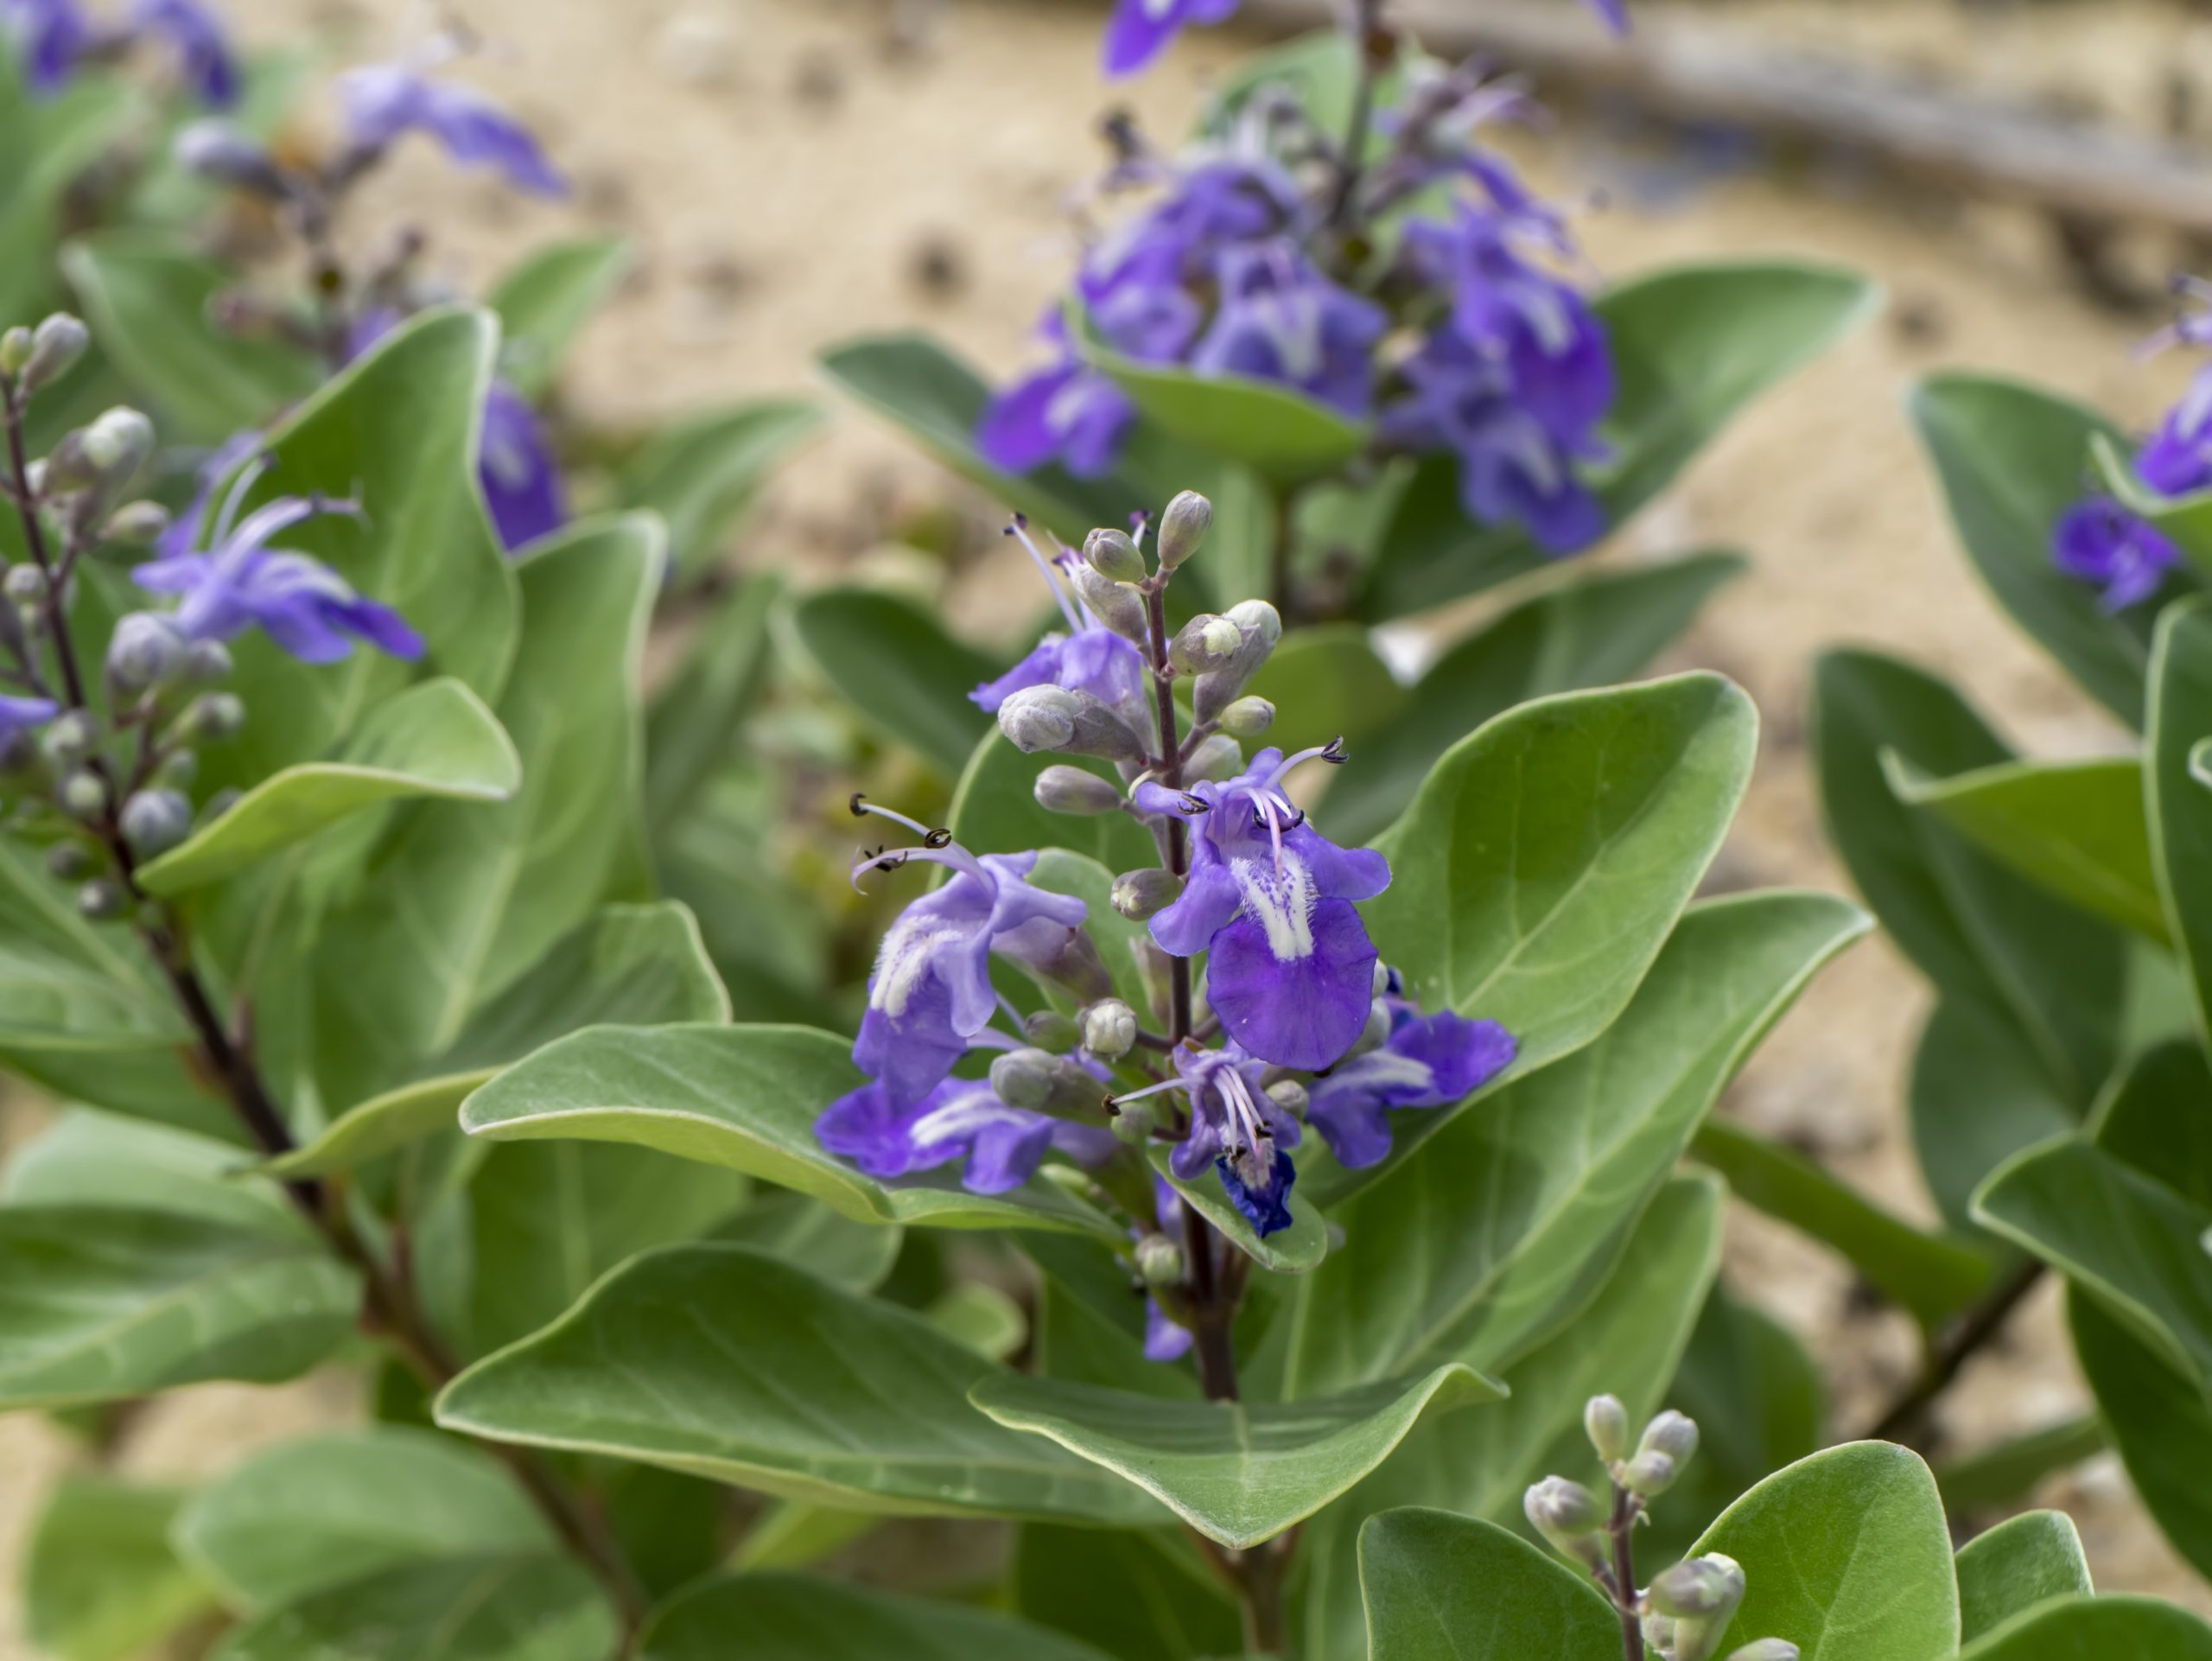 Close up of Vitex trifolia plant on the beach.